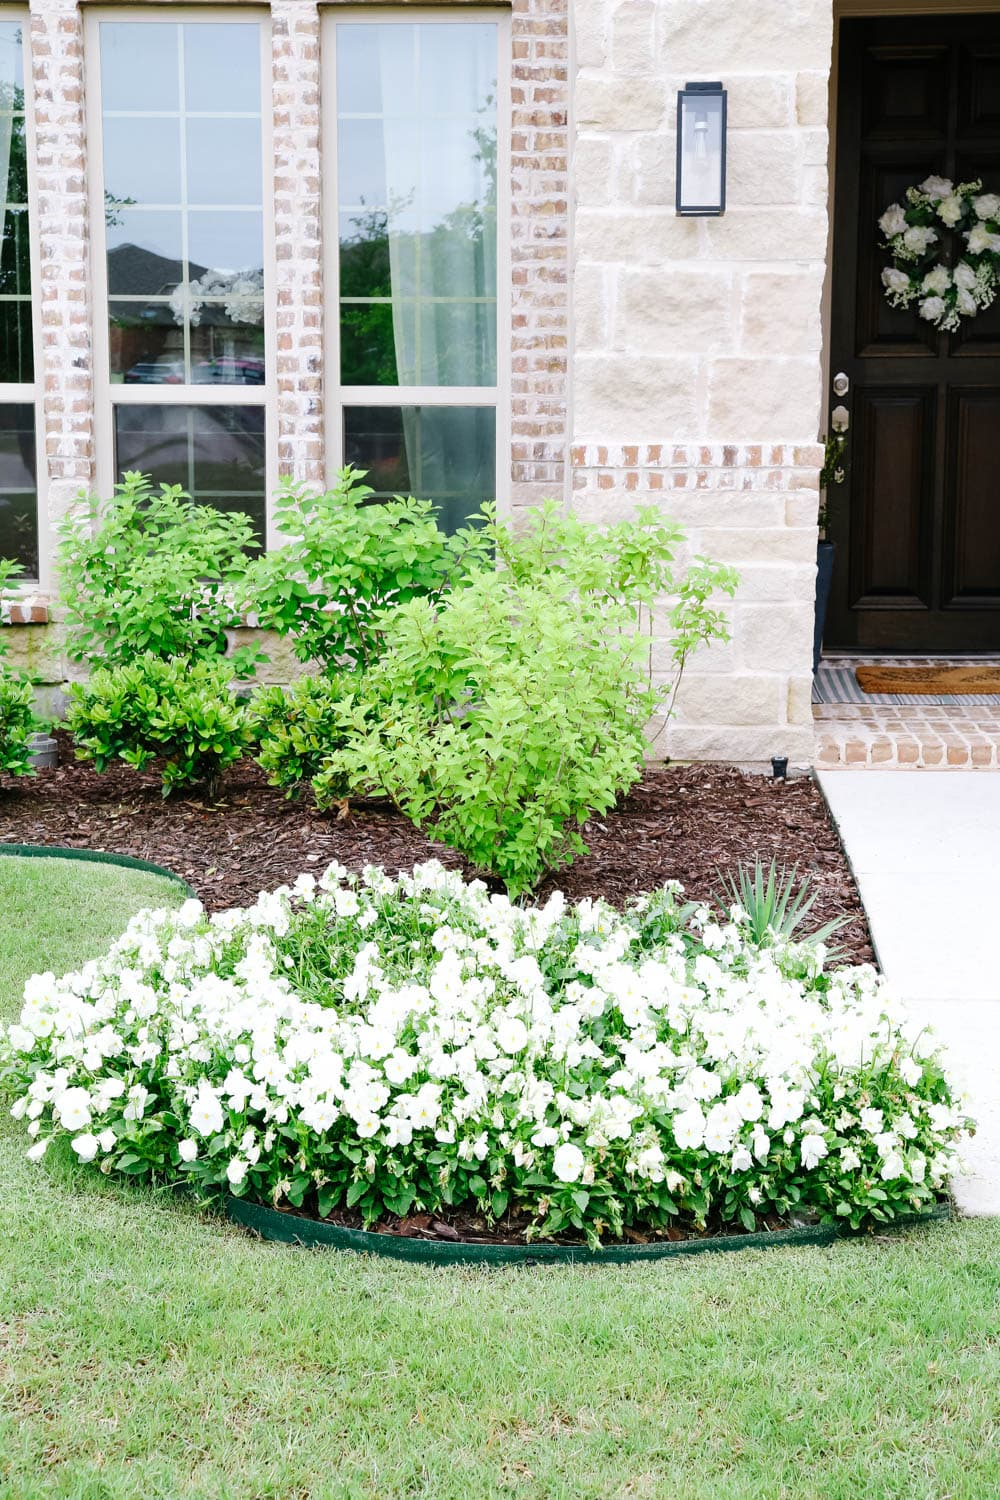 Update your home and increase the value with these affordable tips. #ABlissfulNest #gardening #curbappeal